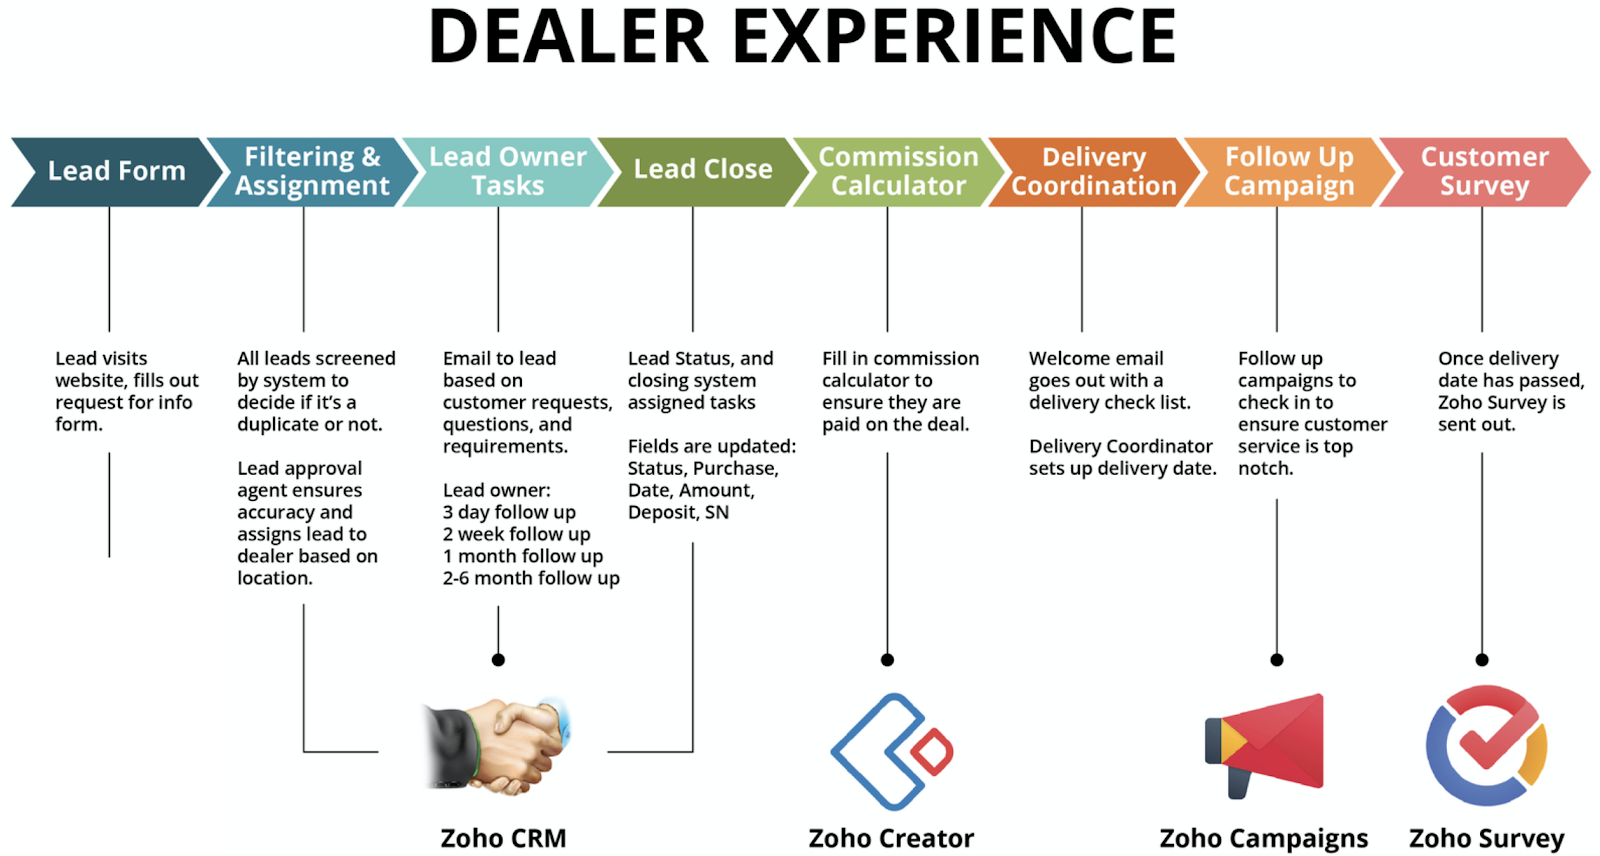 Dealer Experience using Zoho Systems